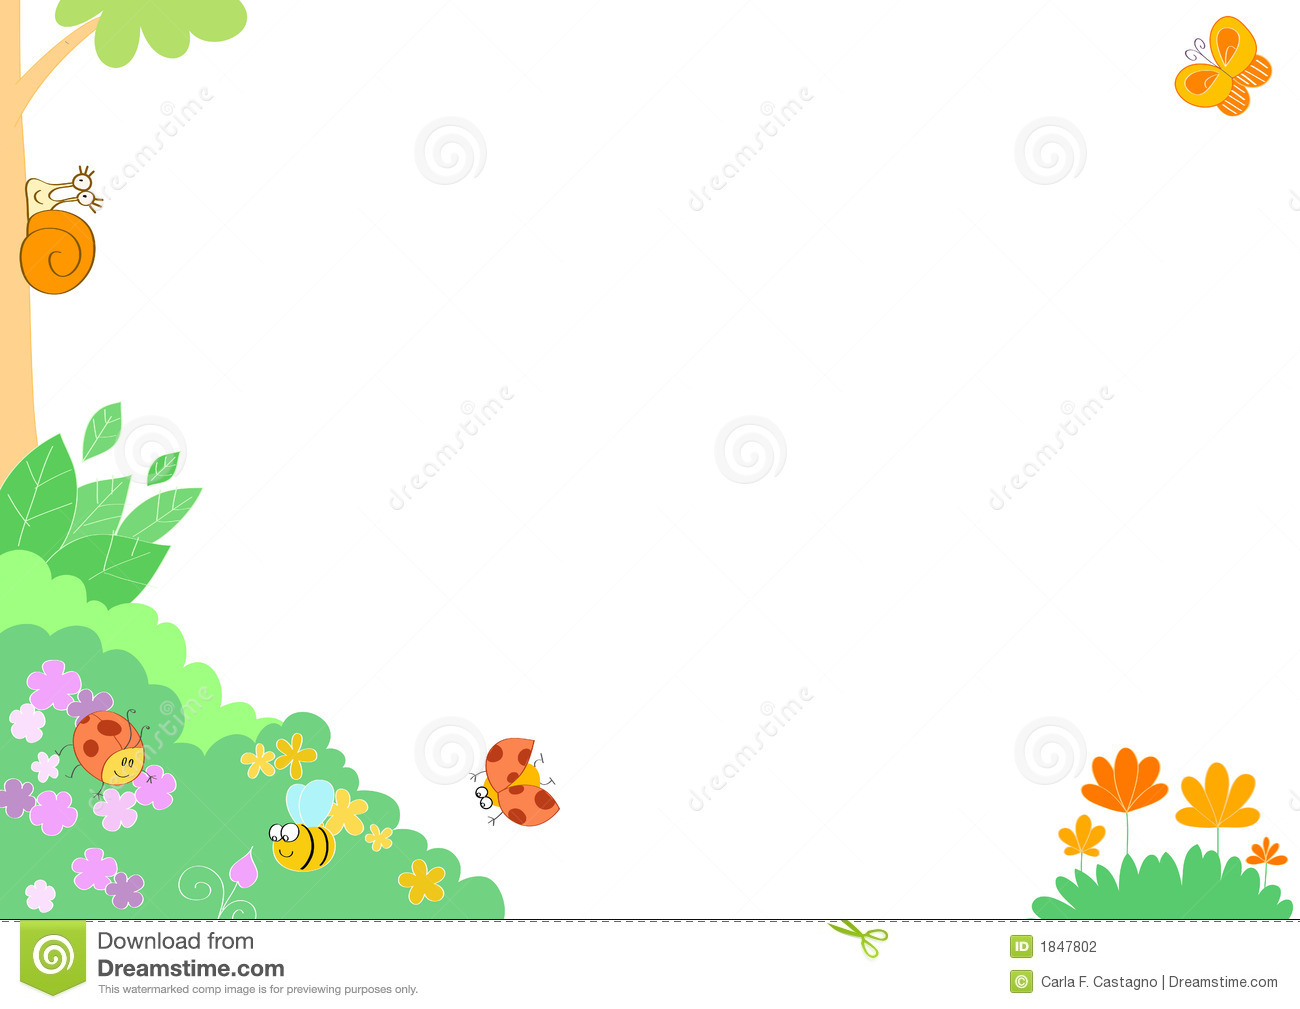 58a8b1ef3bb Funny insects - frame stock vector. Illustration of frame - 1847802